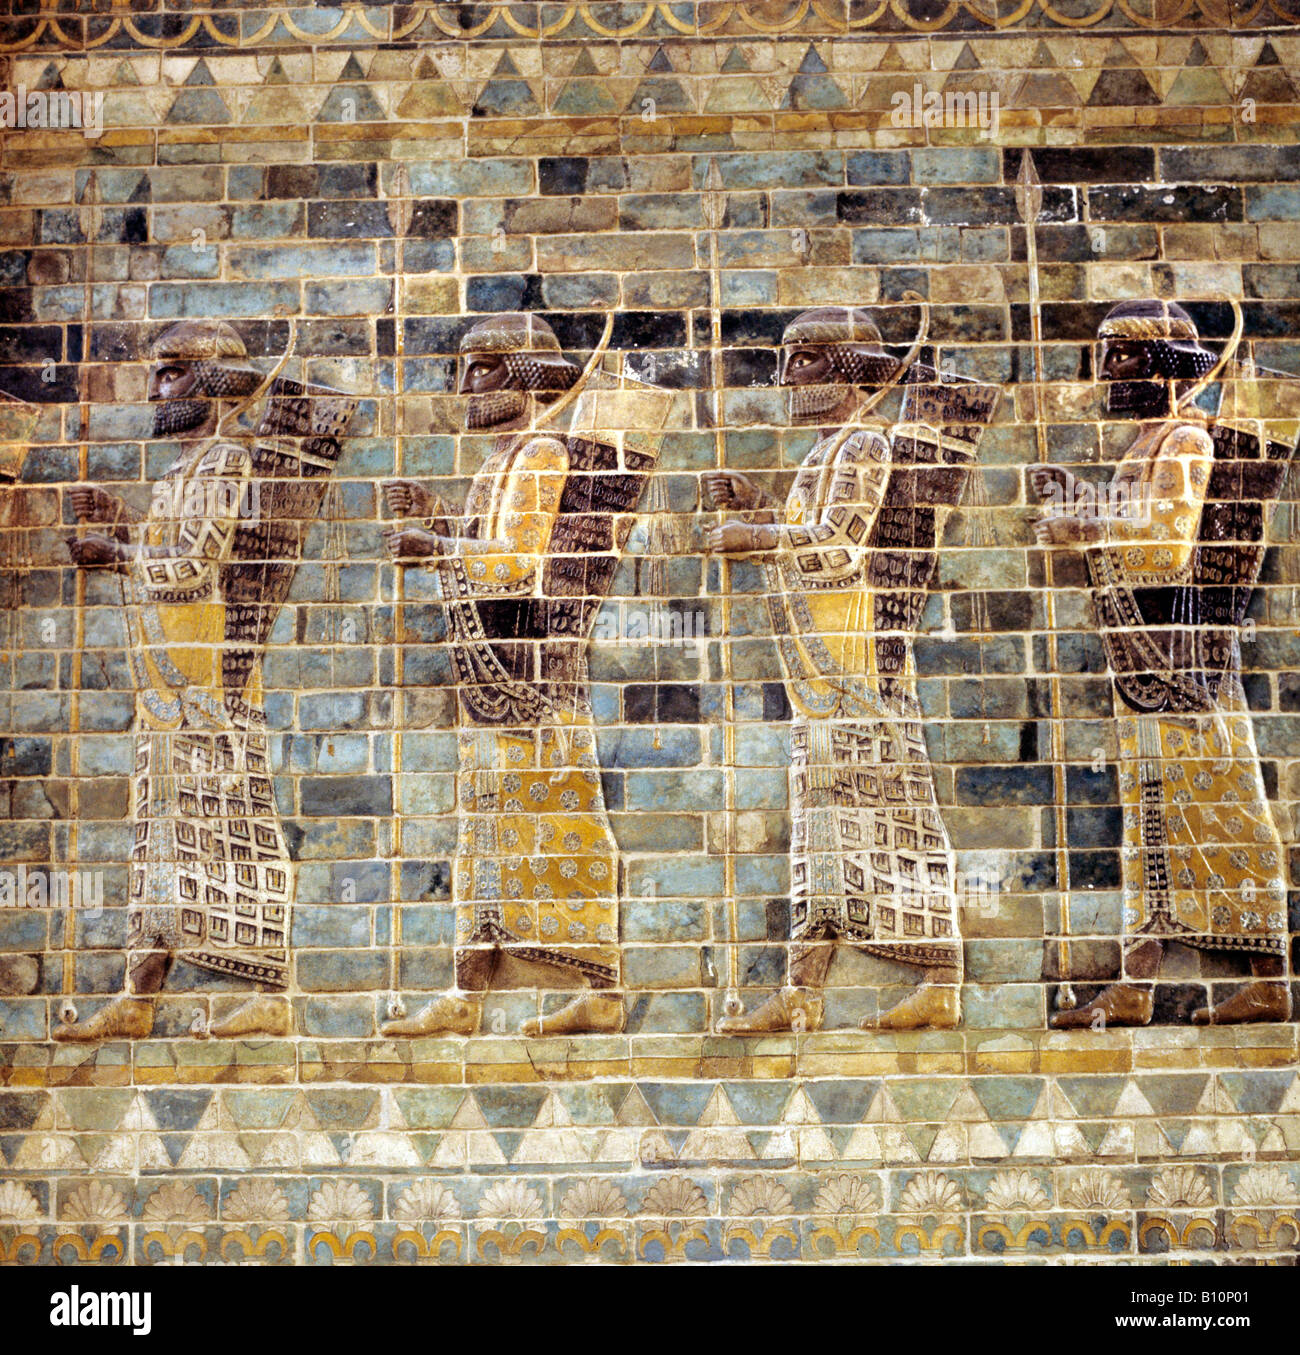 Persian Empire: Susa Archers Frieze From The Palace Of Darius 522 586 BC